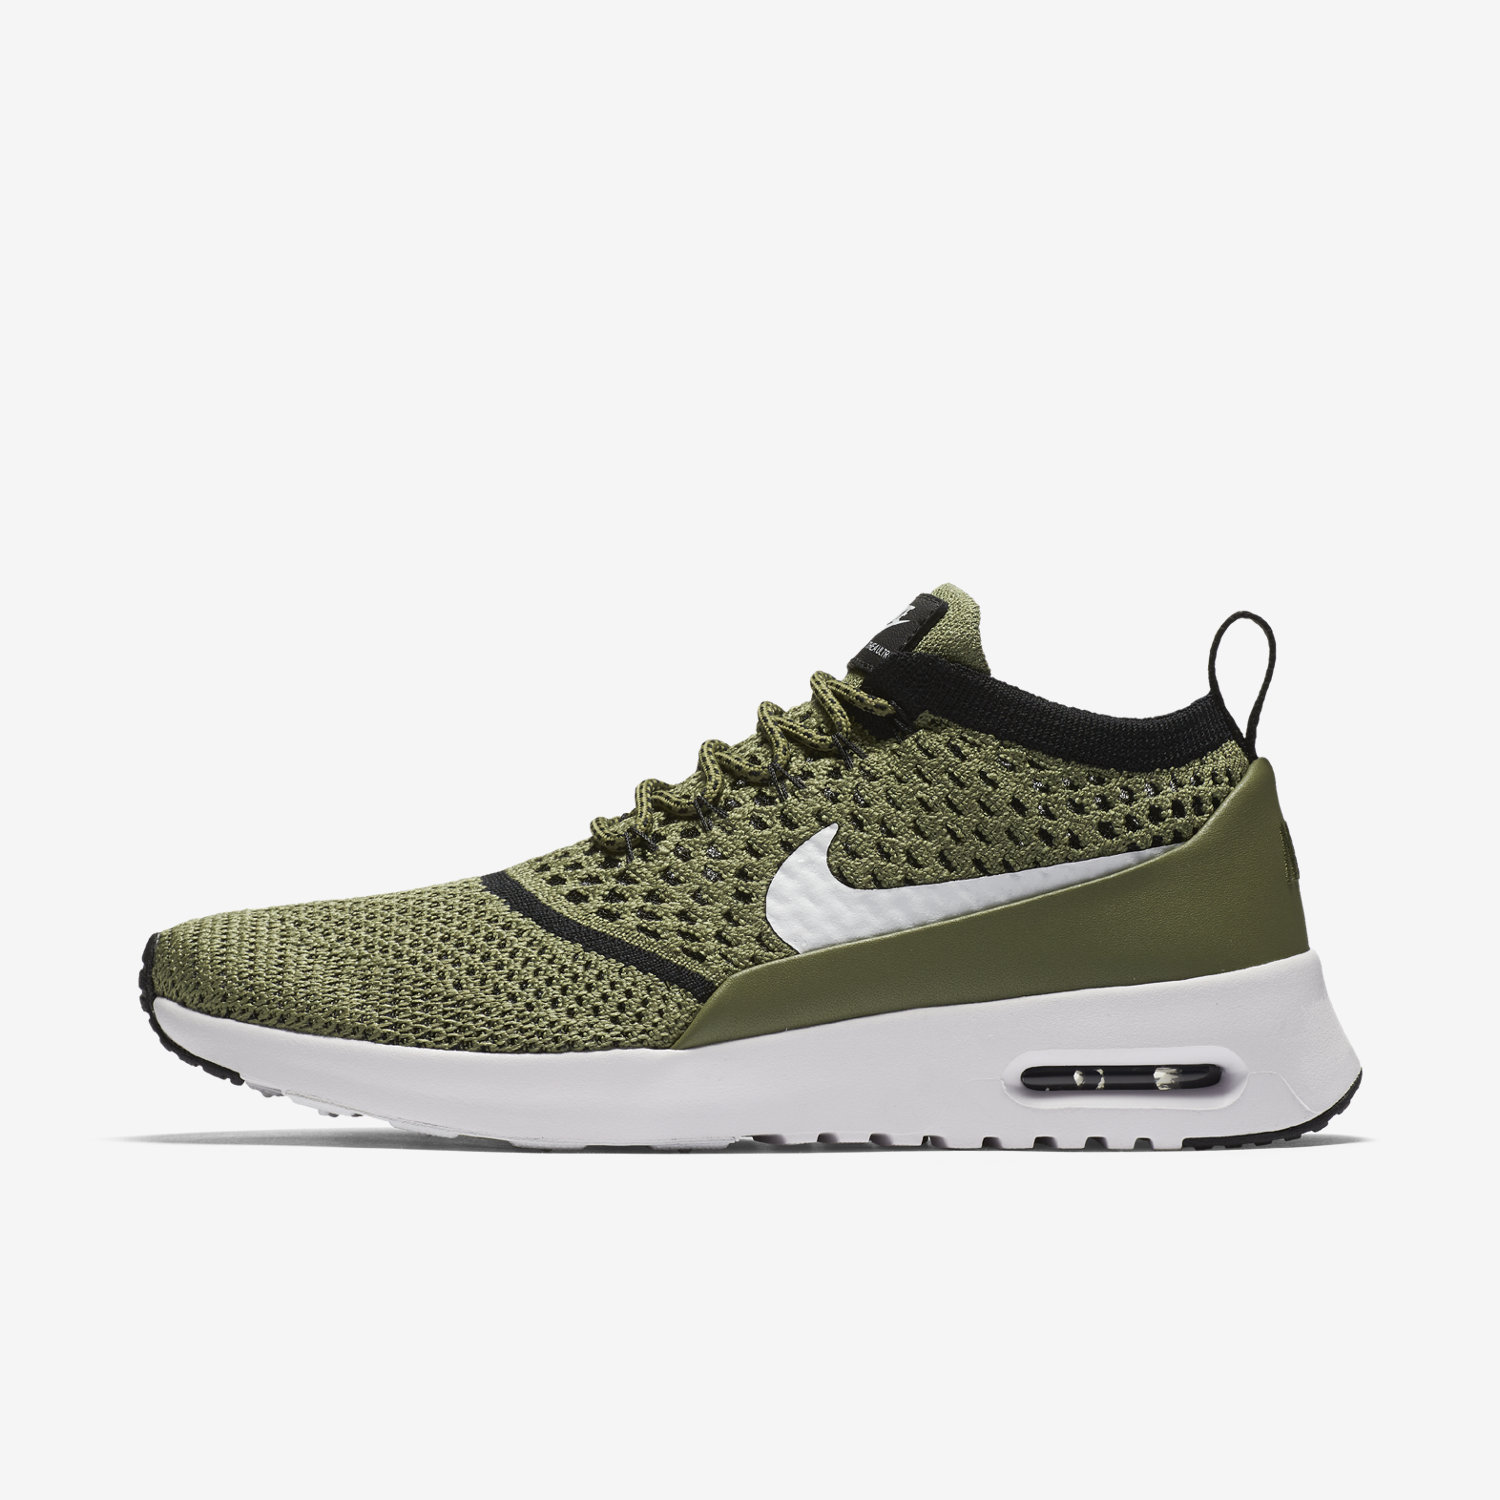 nike air max thea femme kaki song. Black Bedroom Furniture Sets. Home Design Ideas